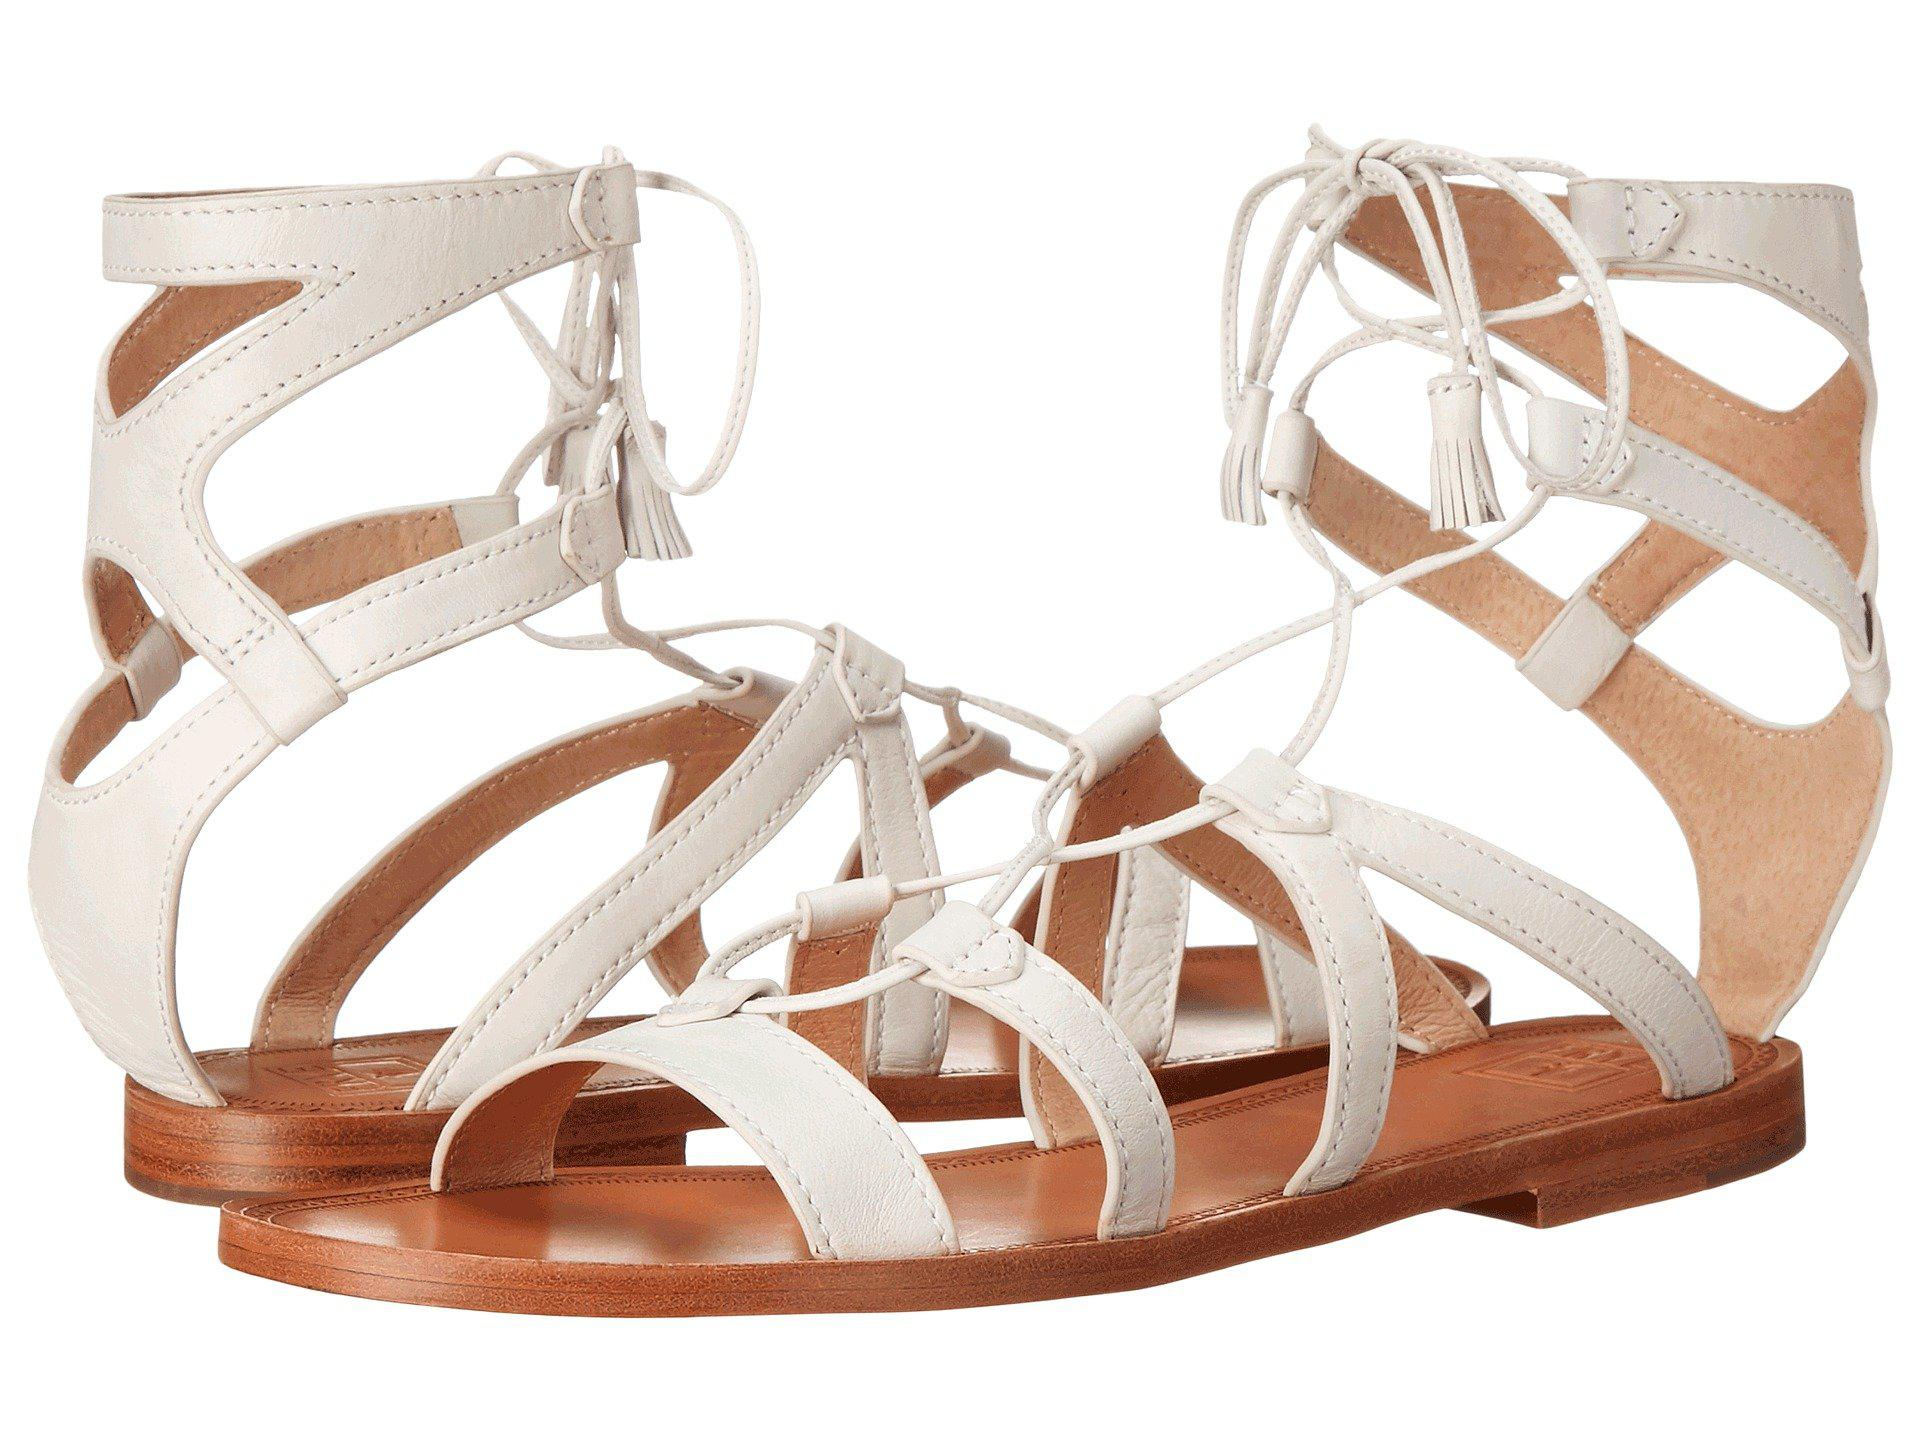 Frye. Women's White Ruth Gladiator Short Sandal